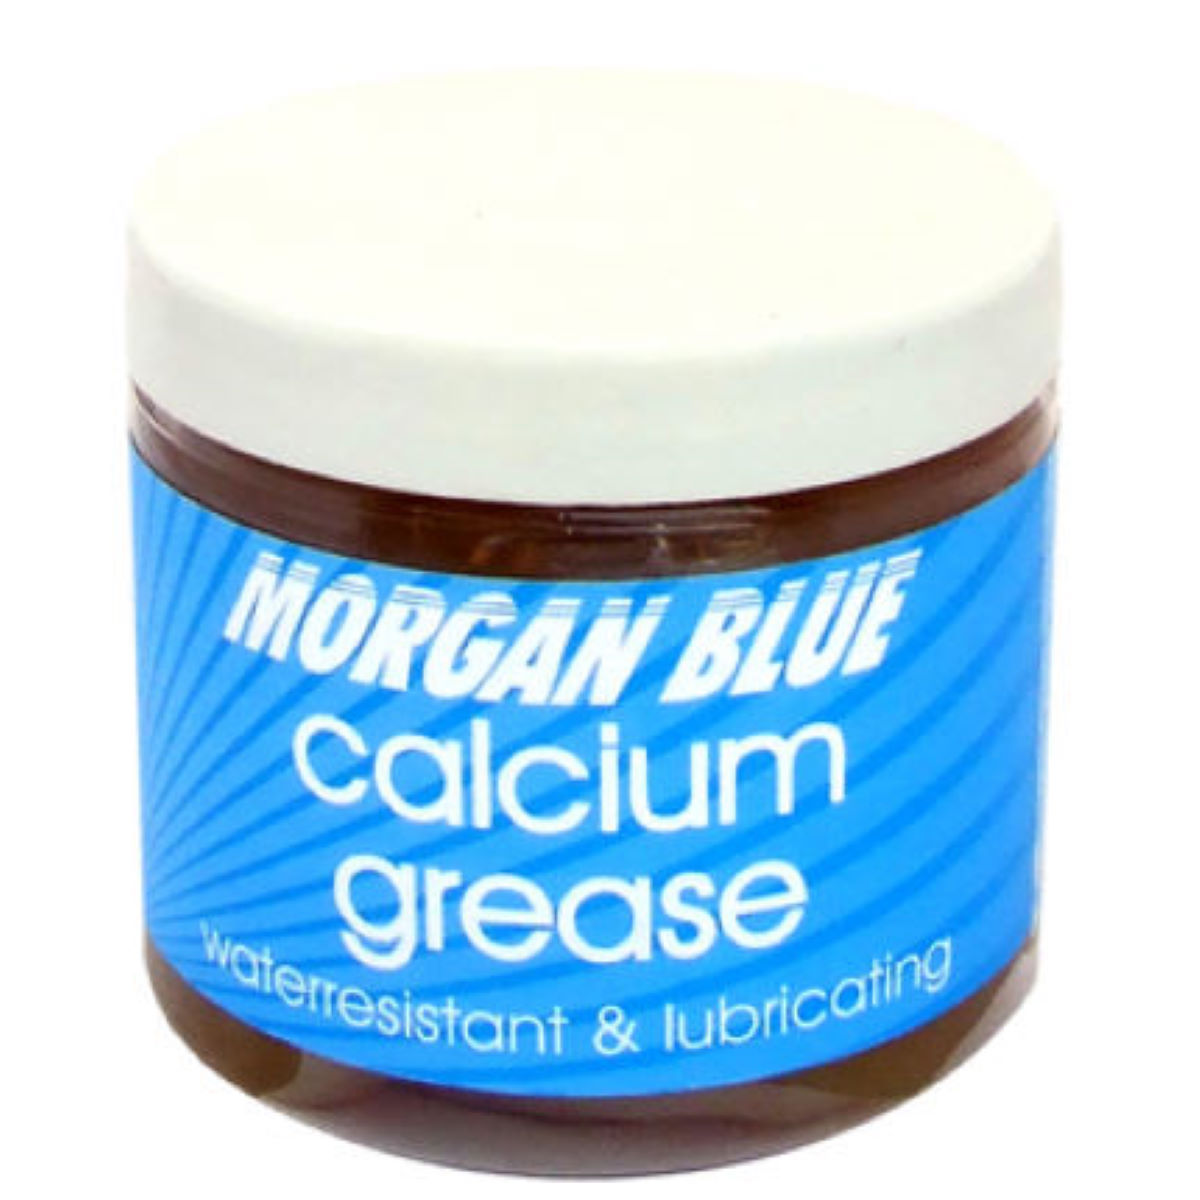 Pot de graisse Morgan Blue Calcium 200 ml - 200ml Graisse